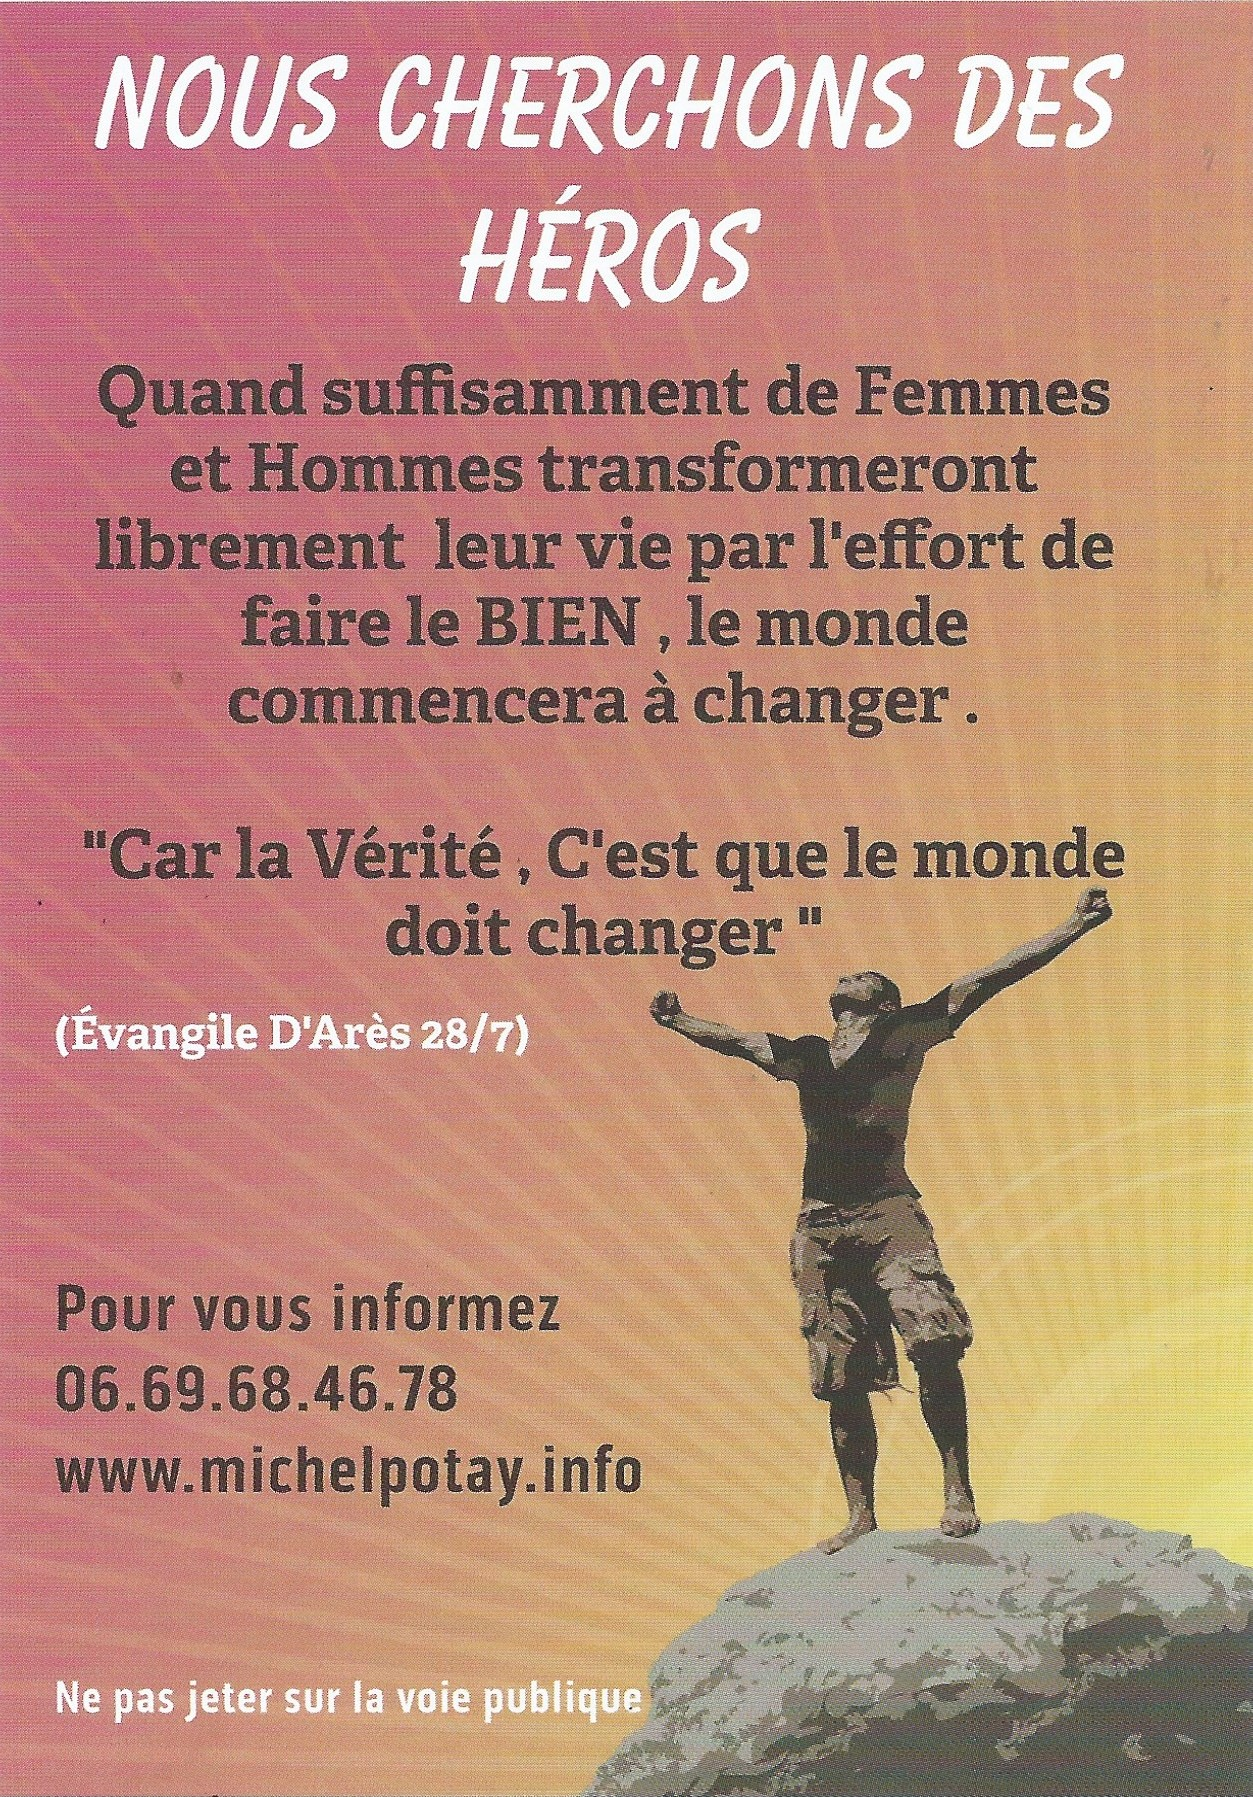 Tract de Philippe et Maryse Valence, recto